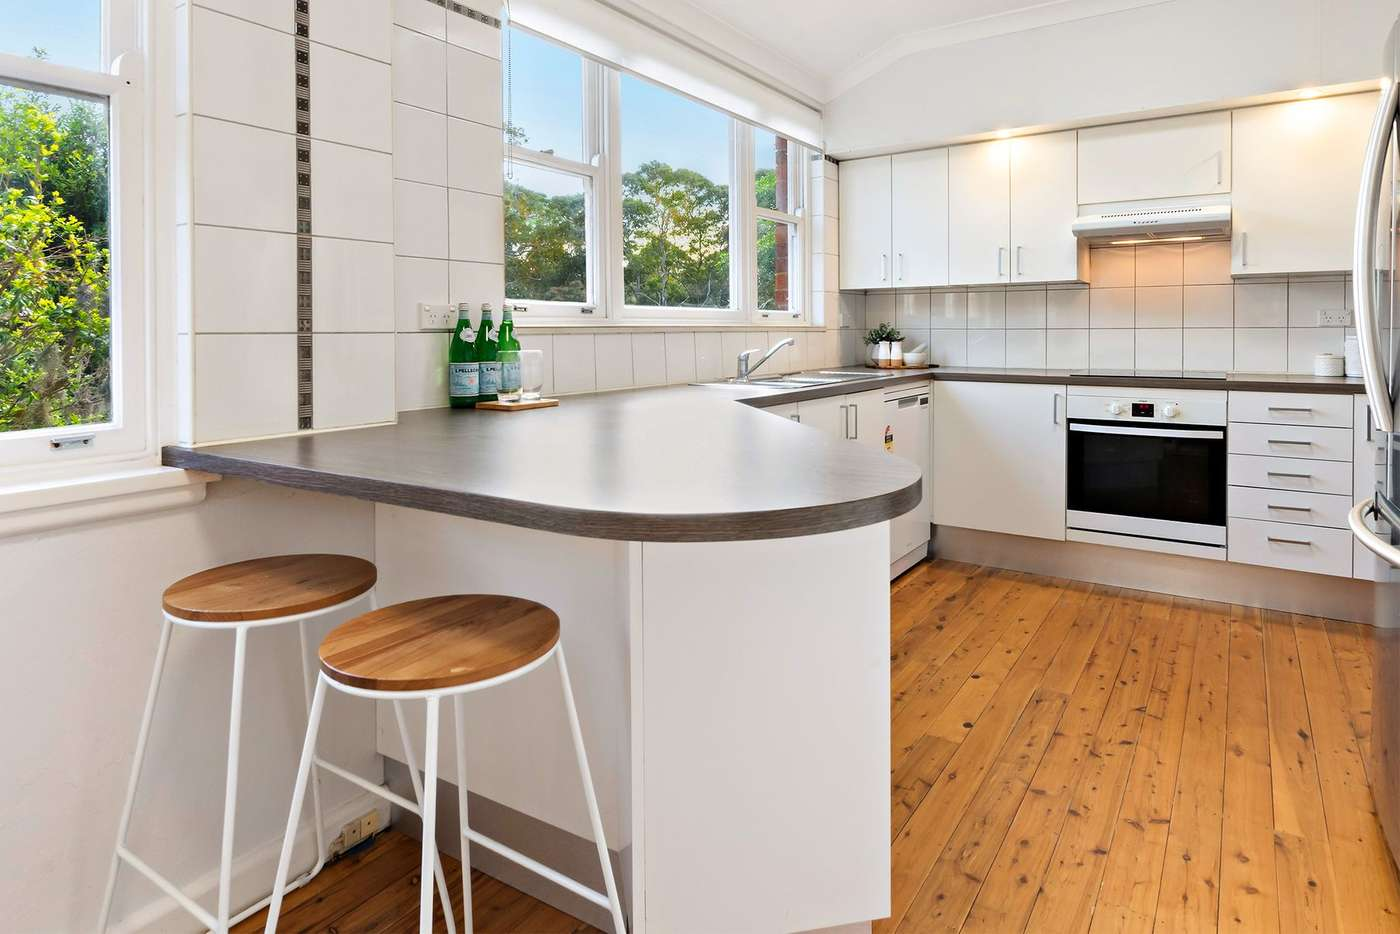 Sixth view of Homely house listing, 1 Lowry Crescent, St Ives NSW 2075